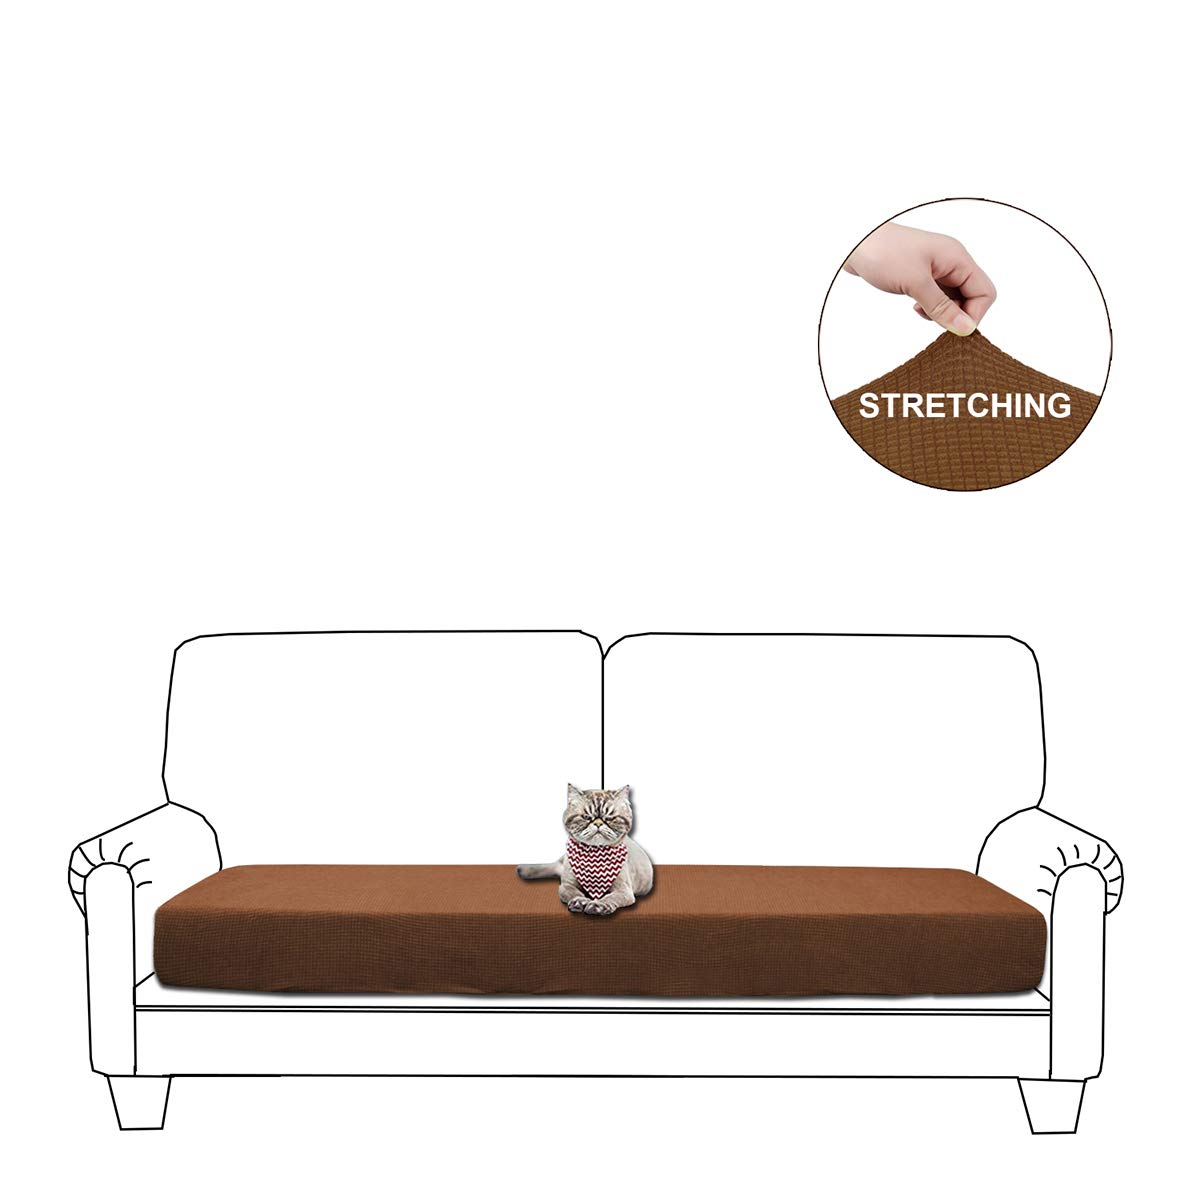 WOMACO Sofa Cushion Cover, Water Repellent Couch Slipcover Stretch Cushion Protector for Sofa Seat (Brown, Loveseat Cushion)